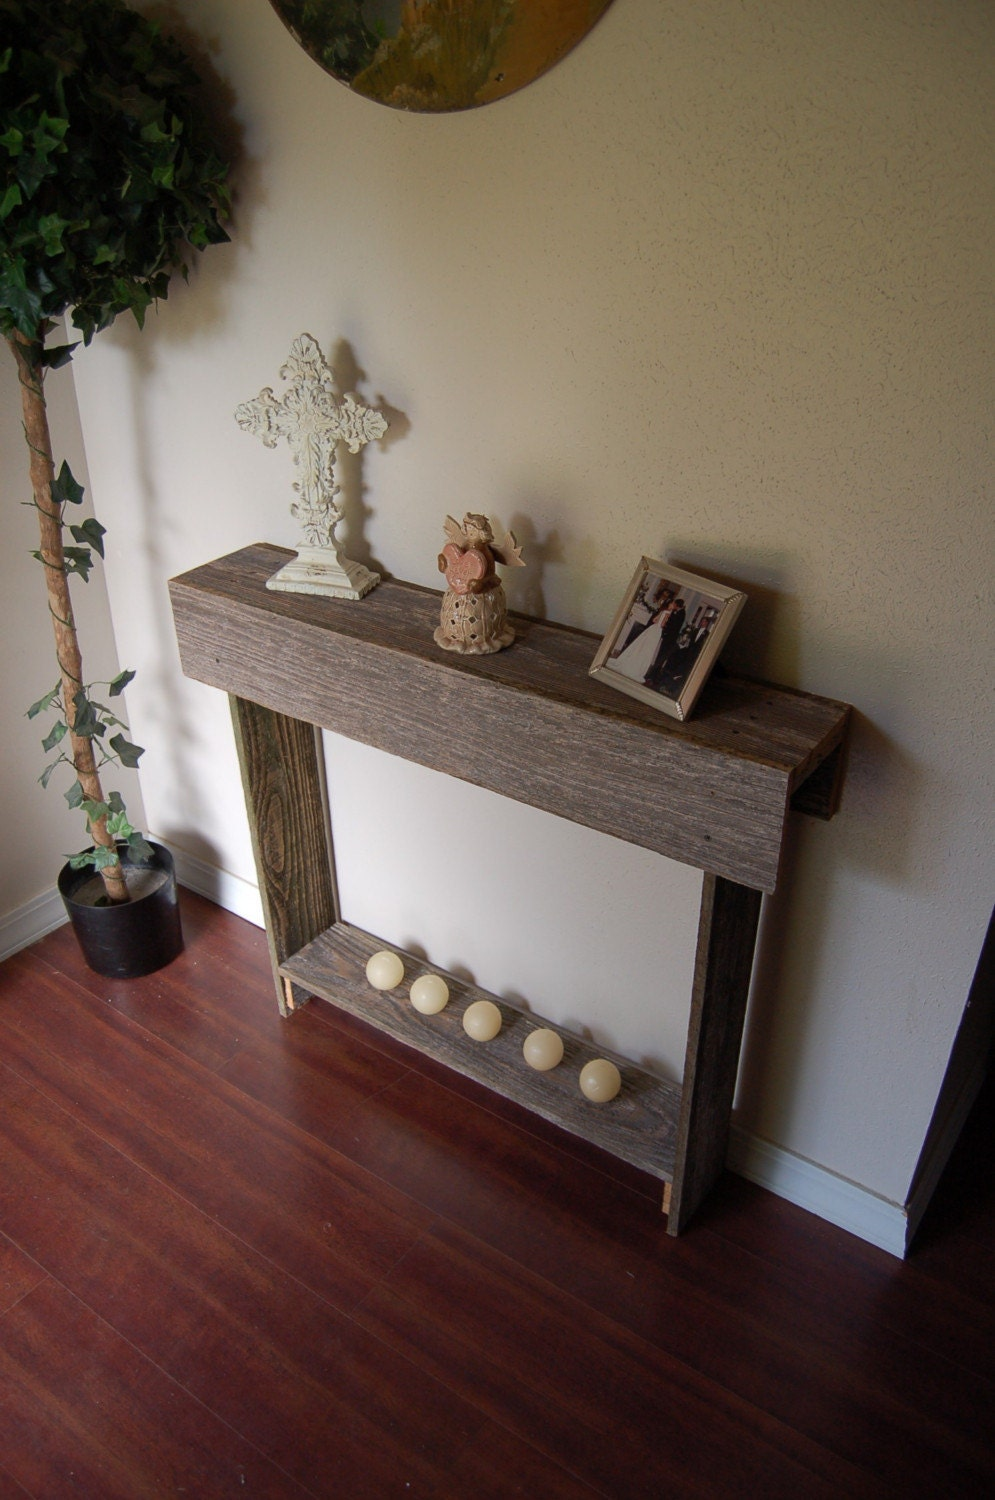 Popular items for pallet furniture on Etsy